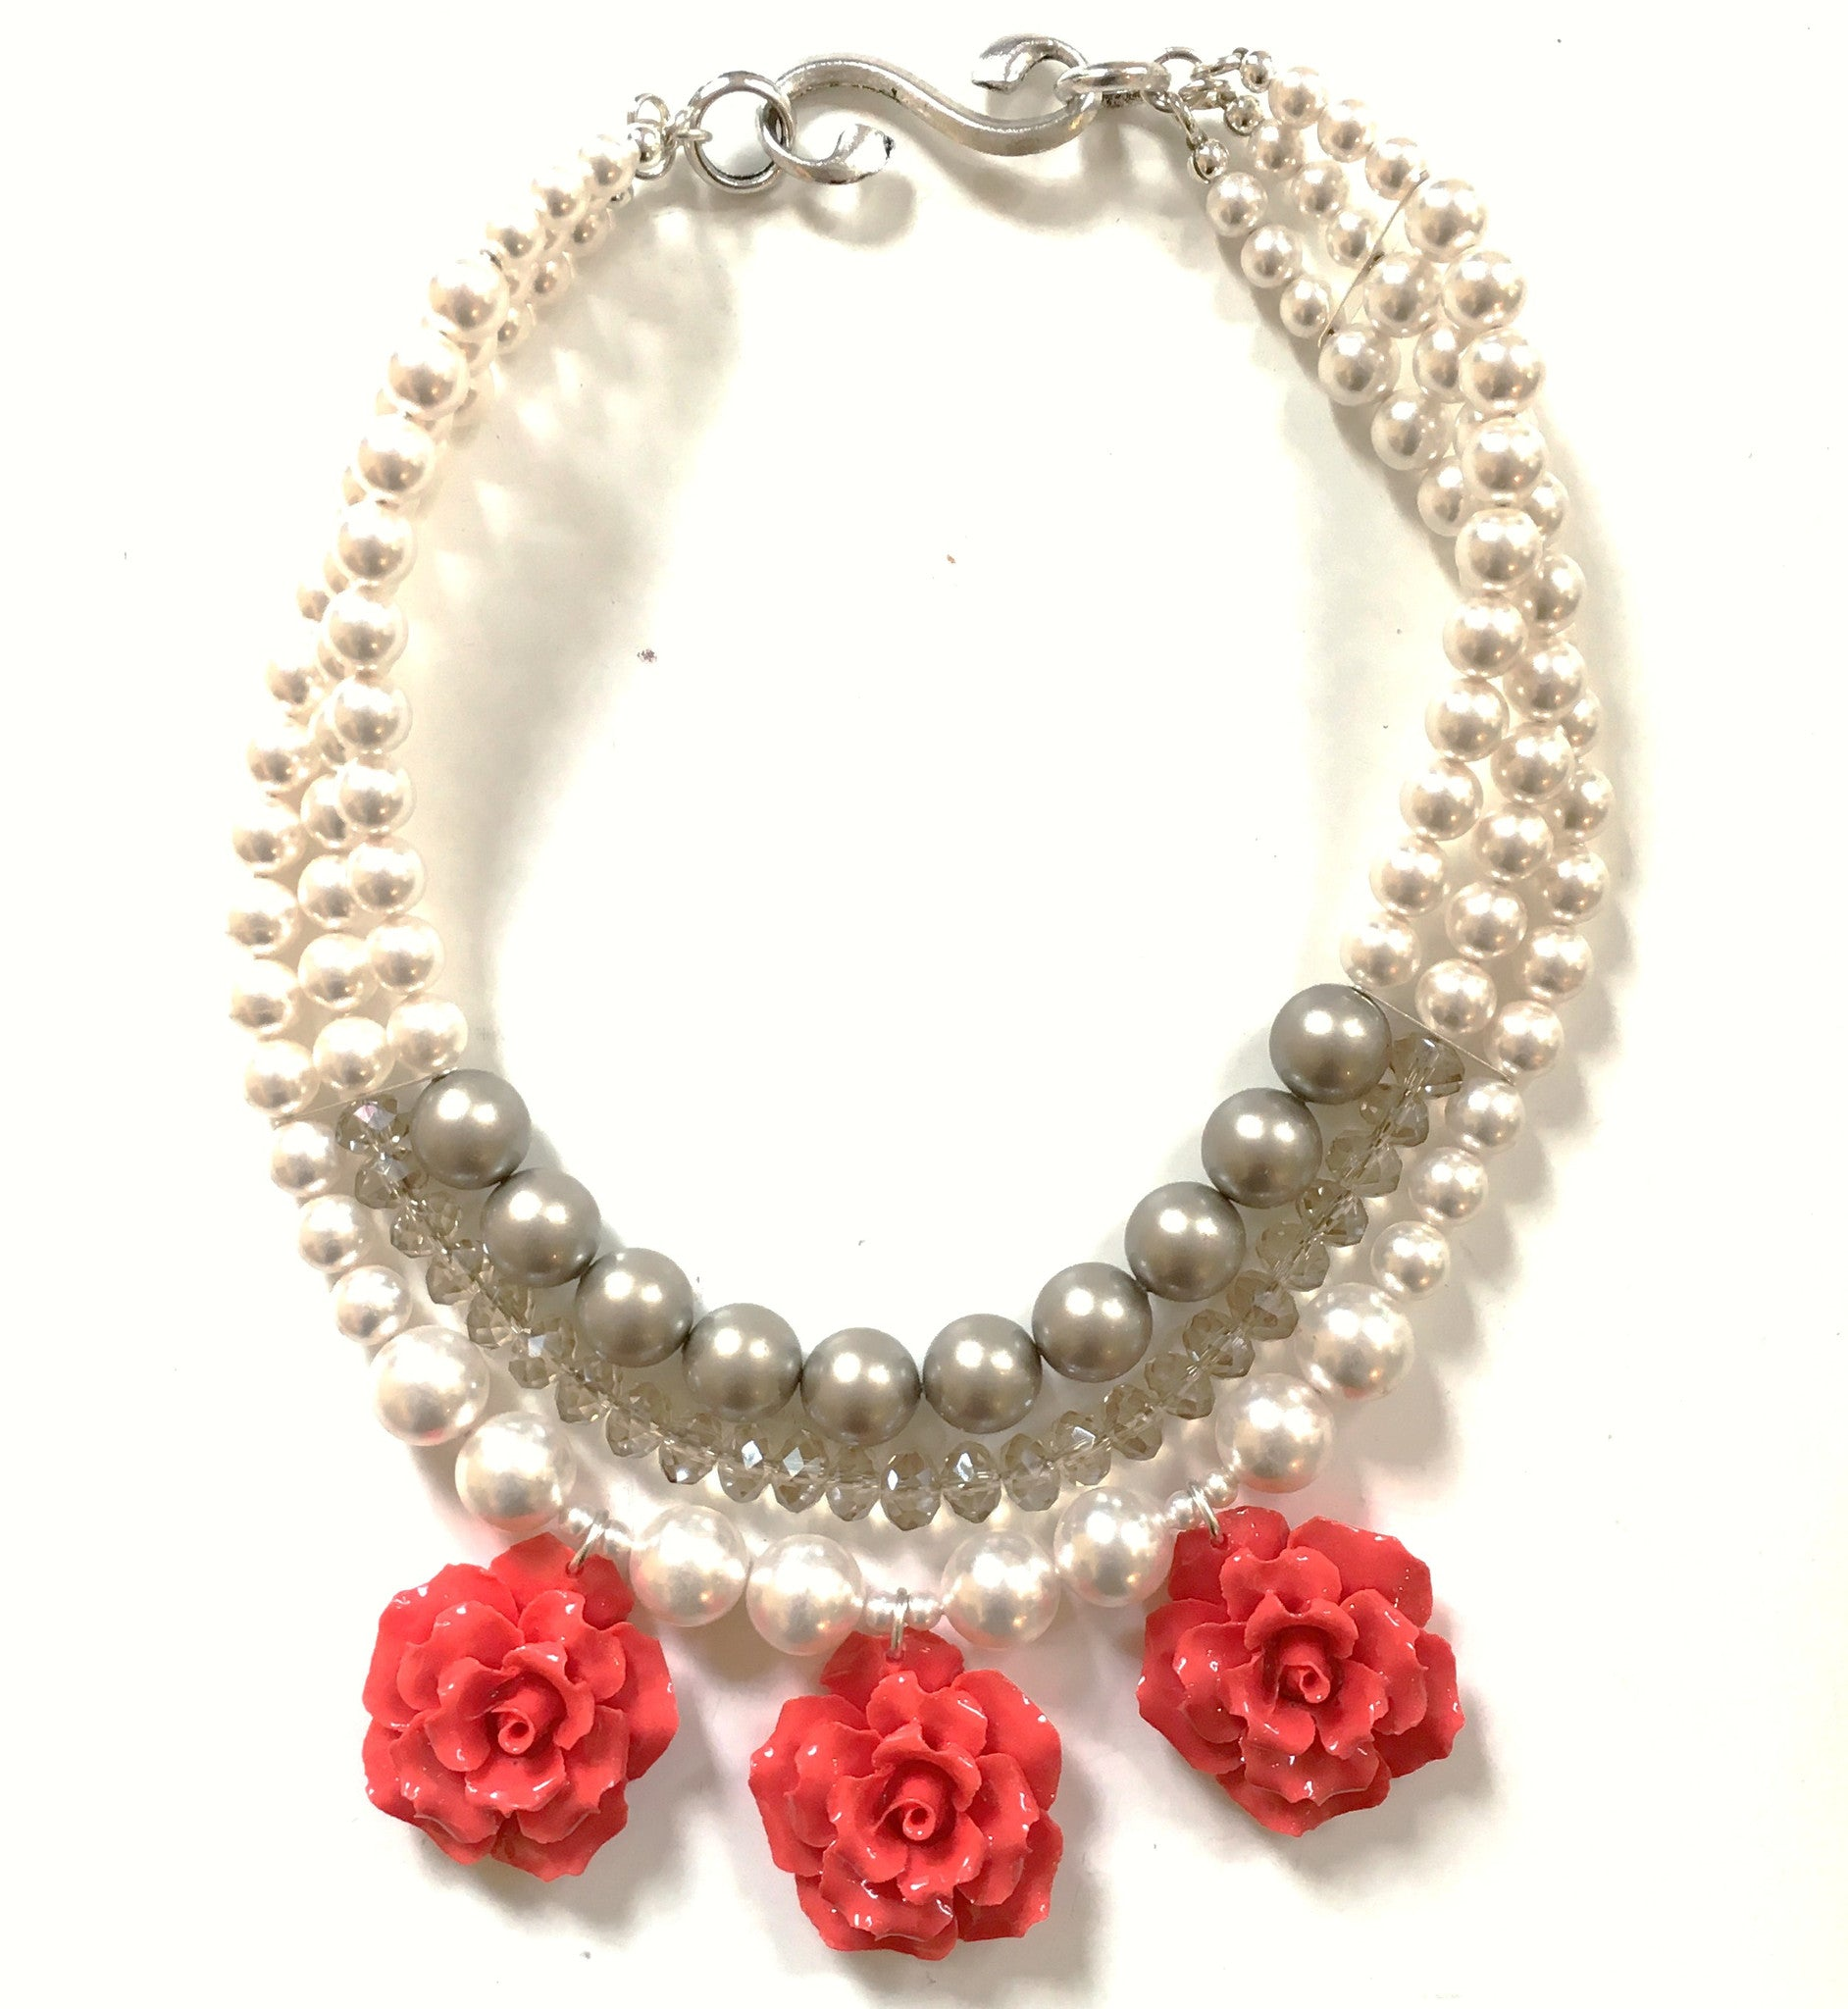 Handmade Necklace - Run for the Roses Featuring Swarovski Pearls